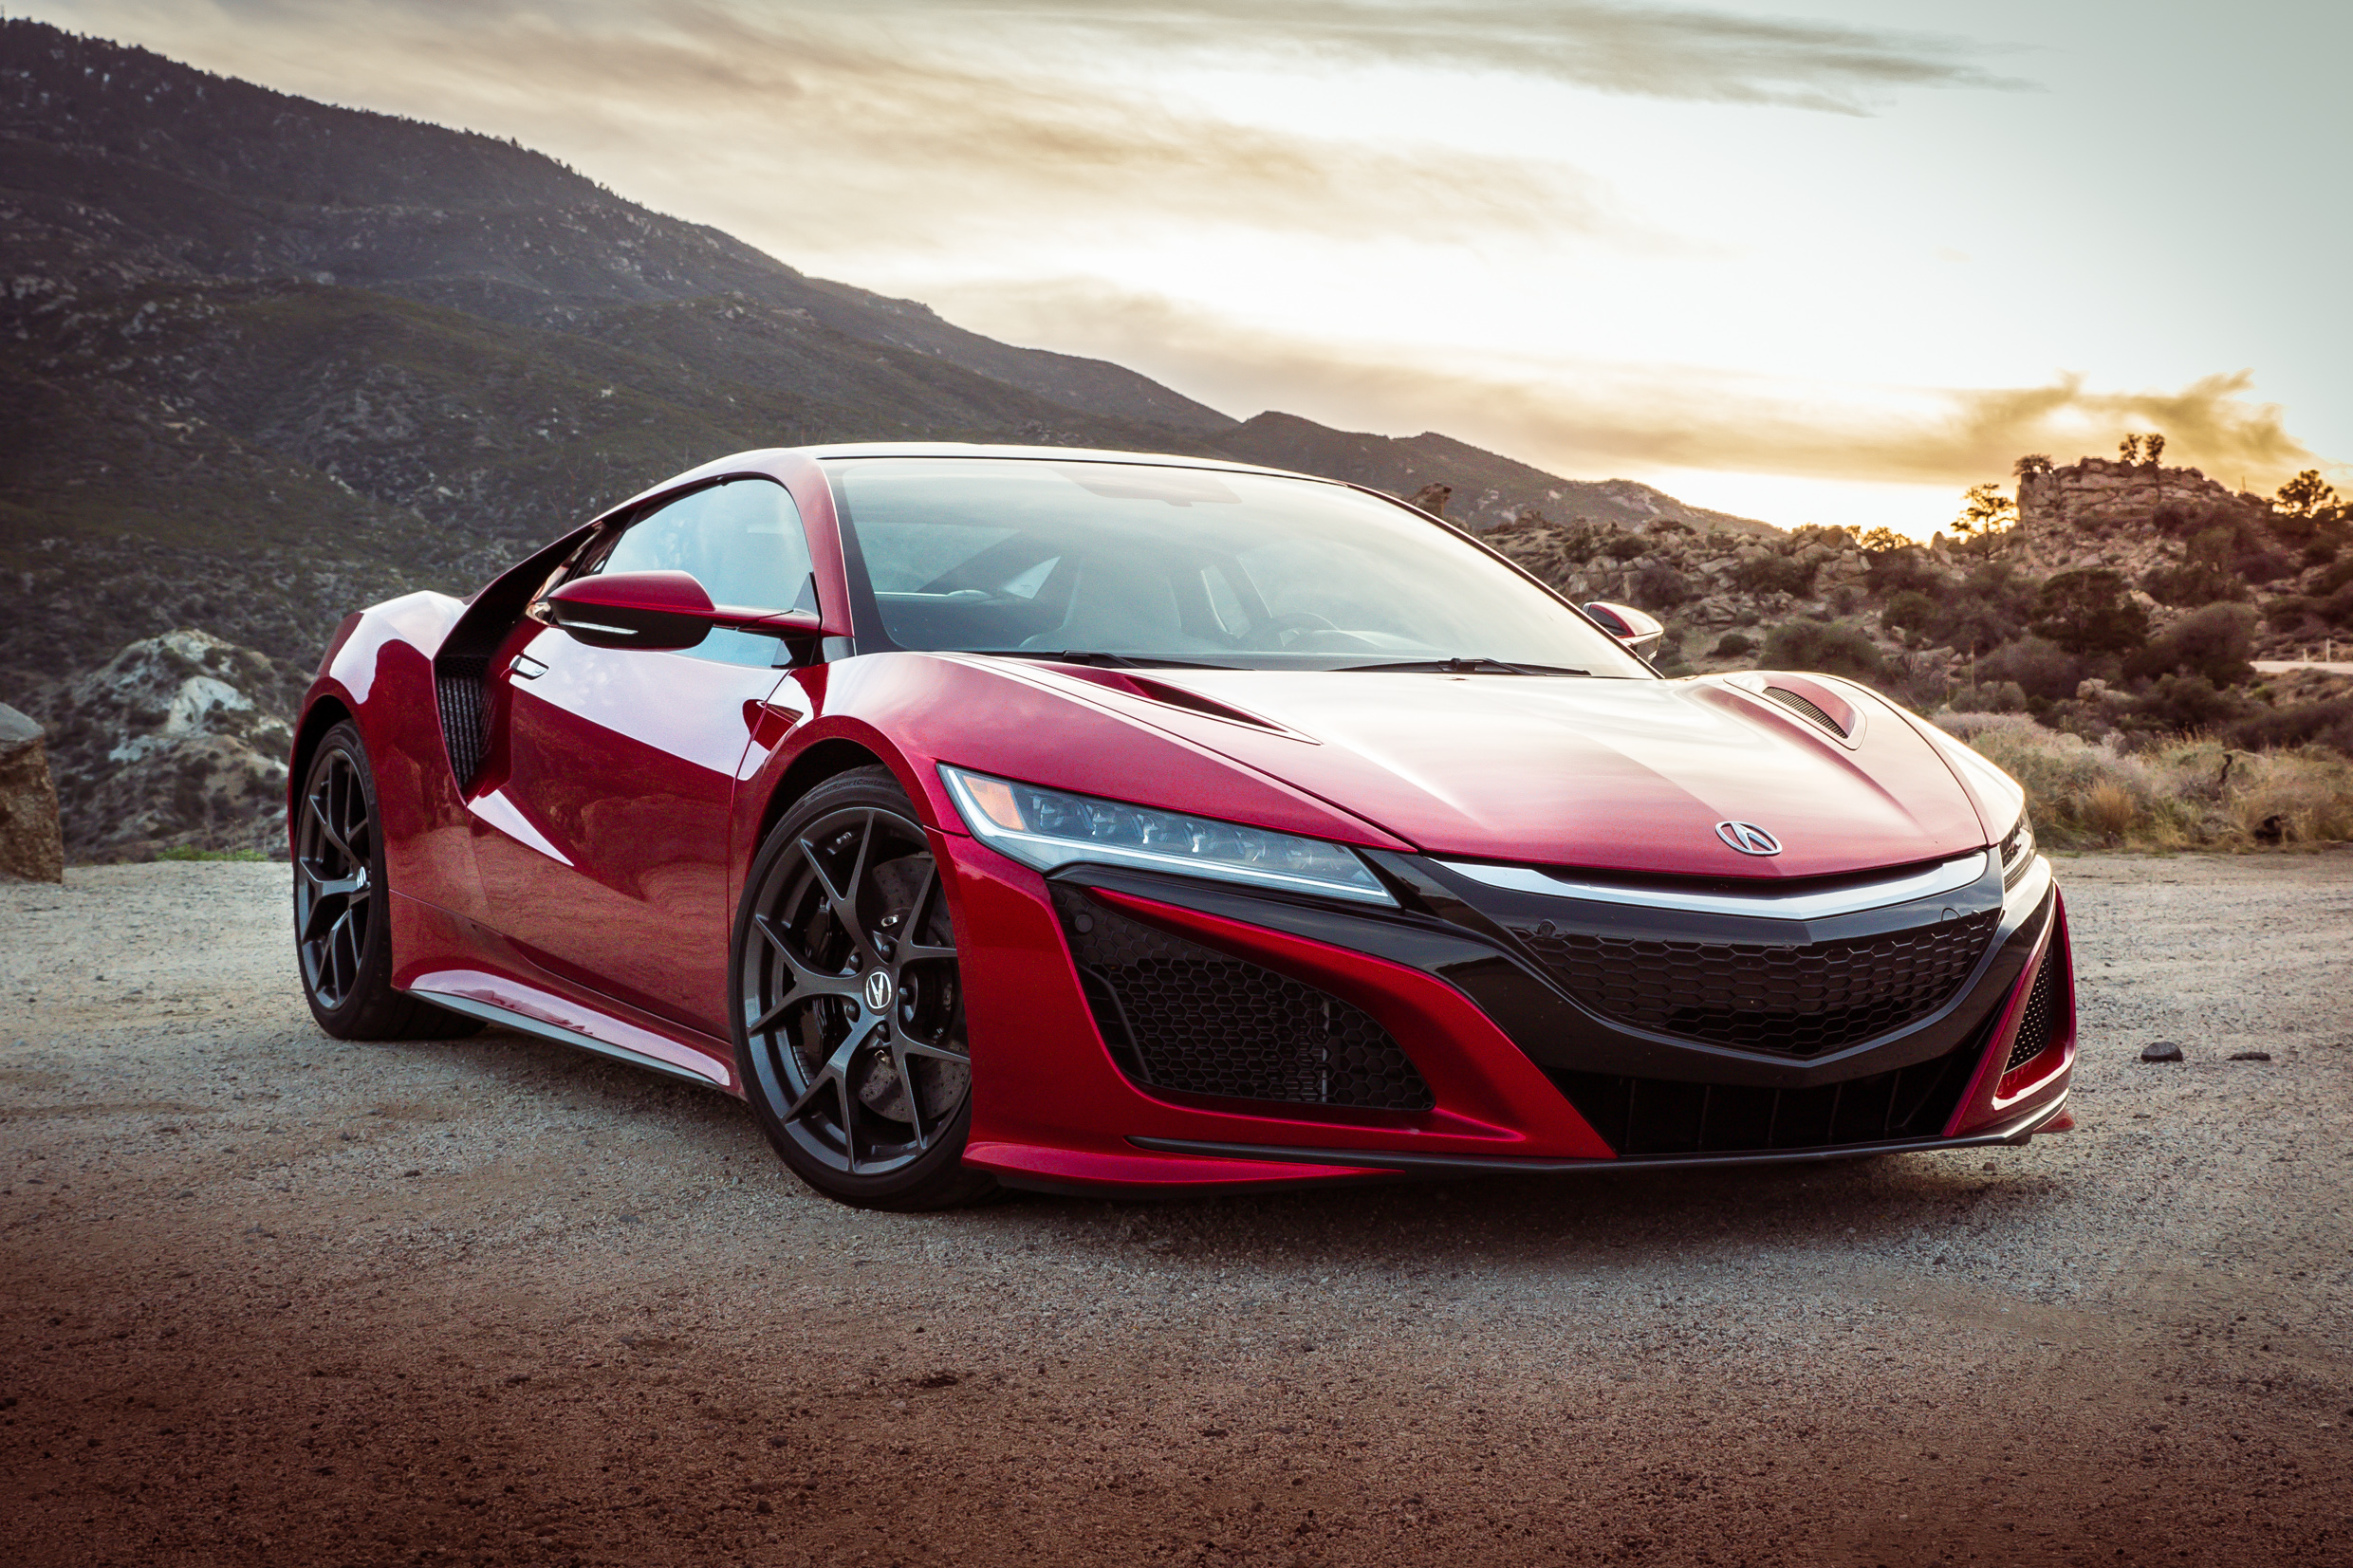 2017 Acura NSX on the road and the track (pictures) - Page 34 - Roadshow